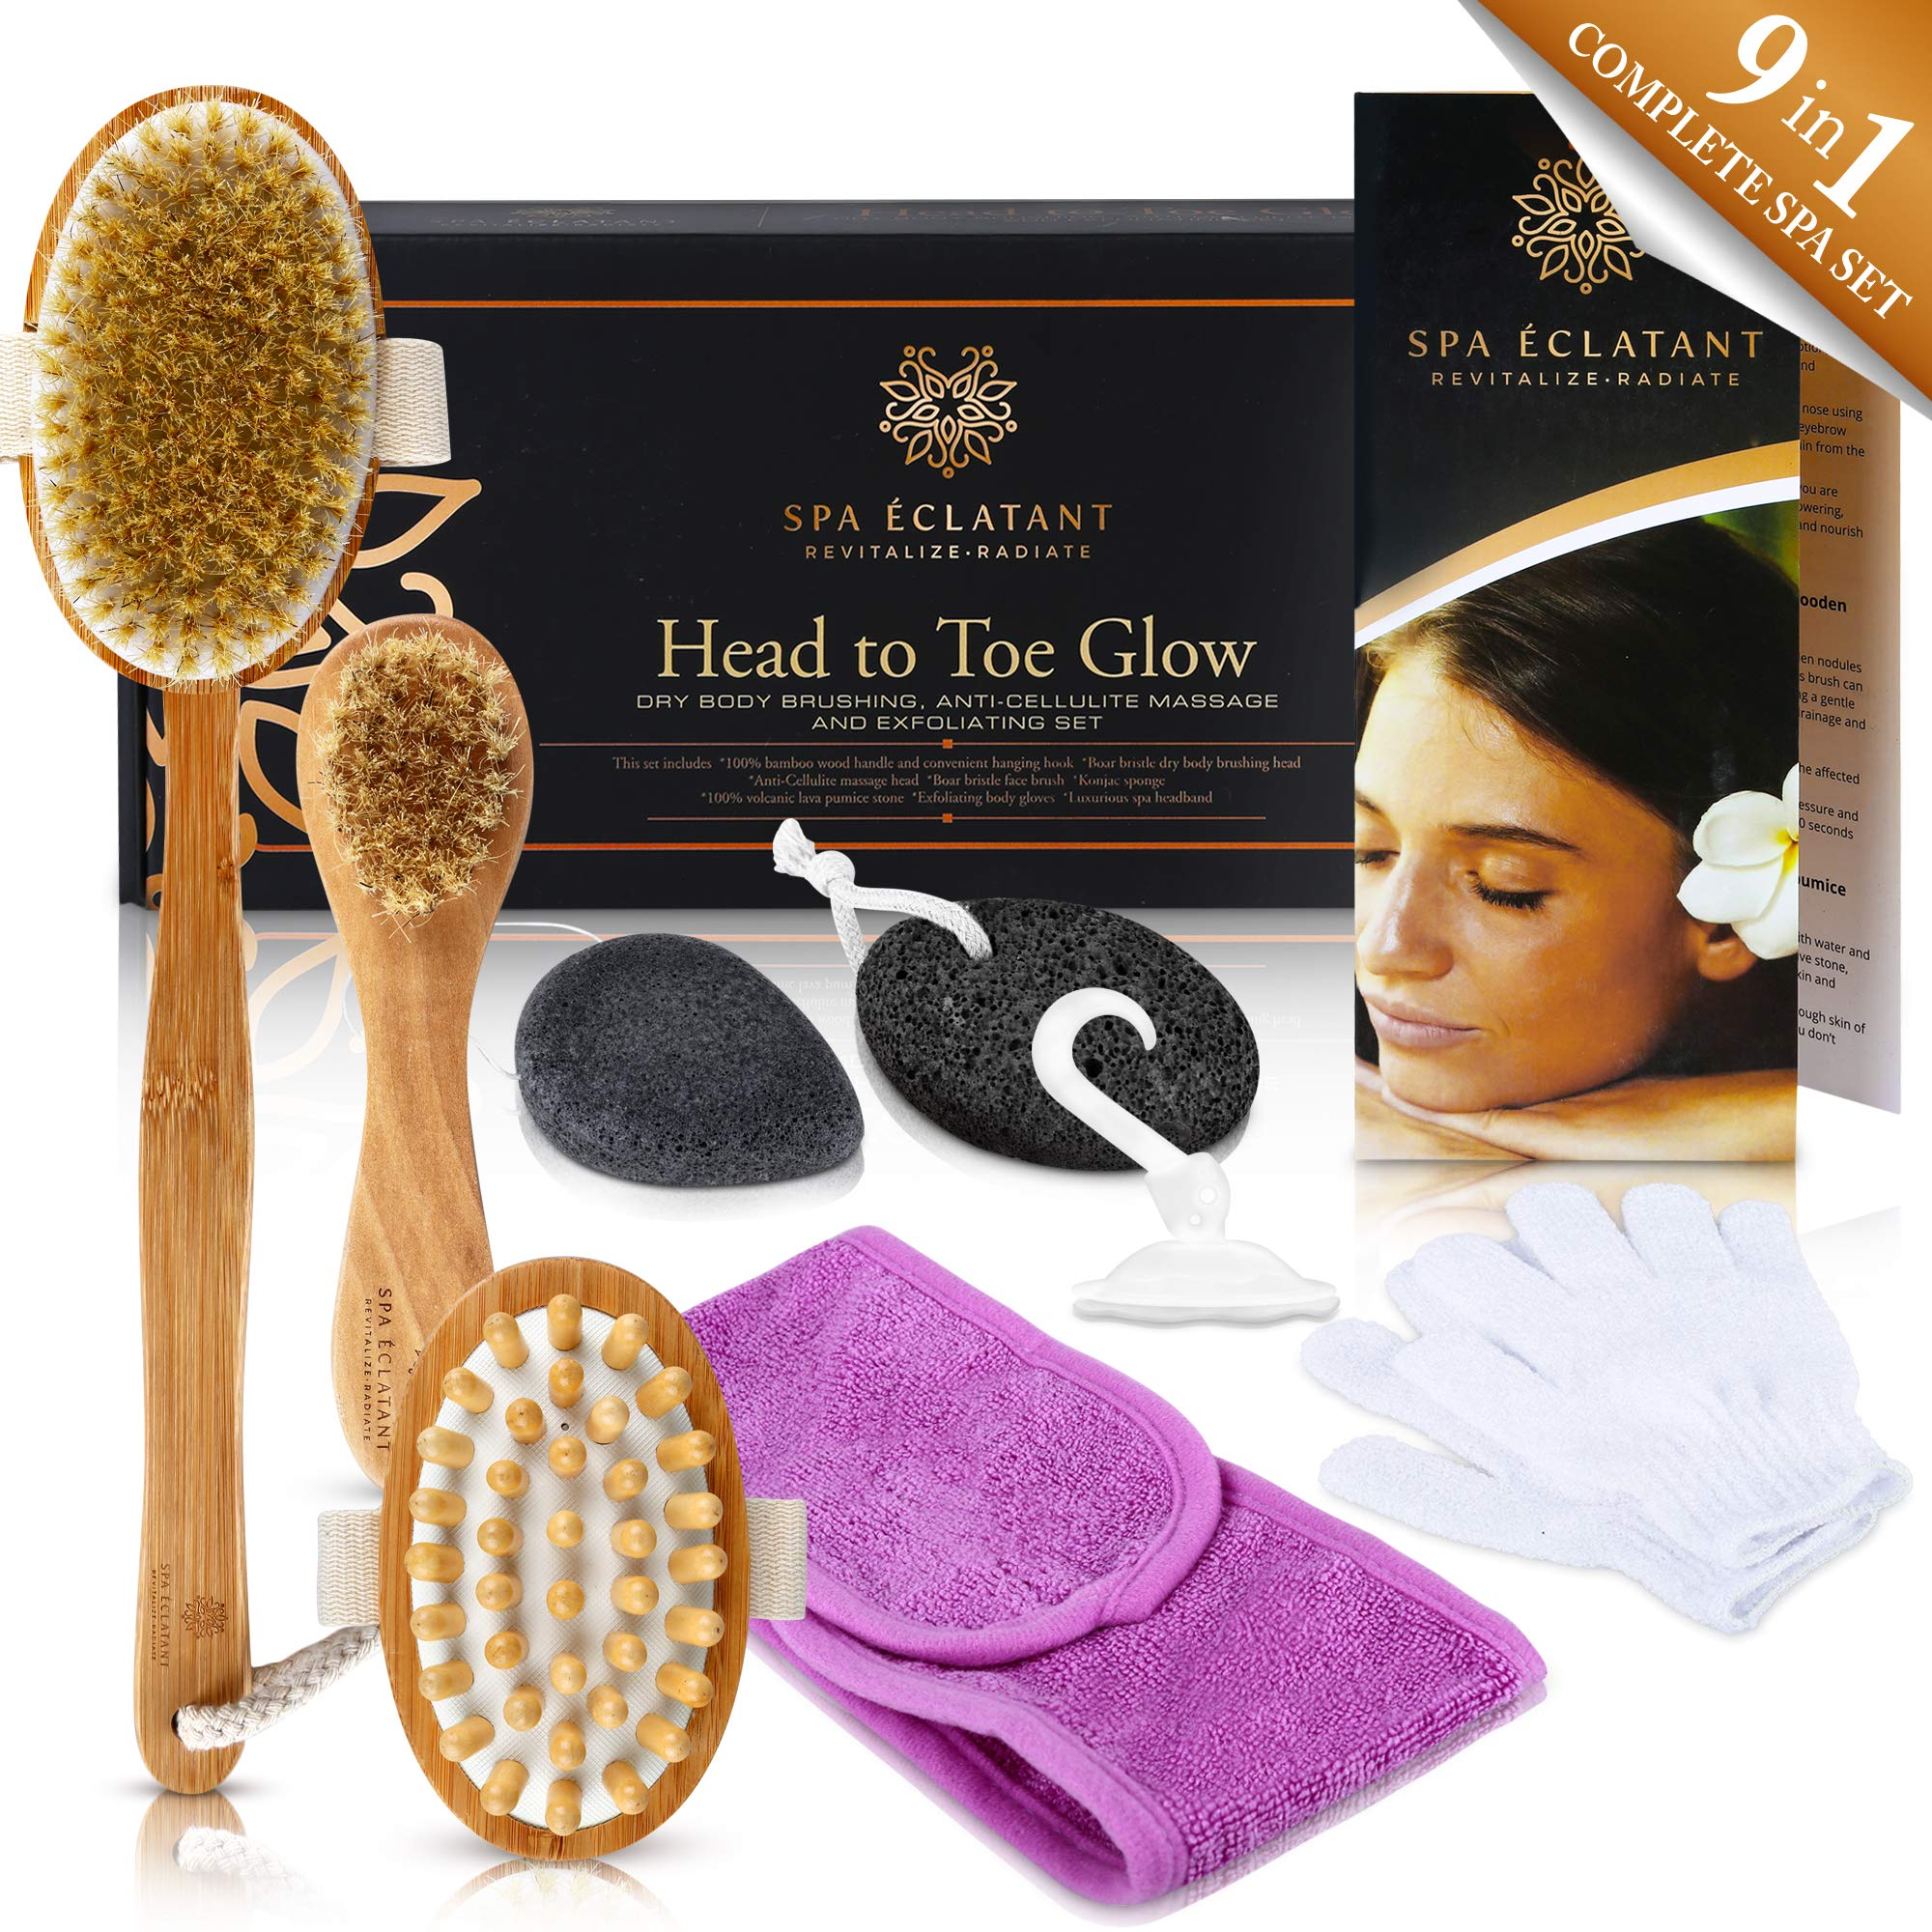 Dry Brushing Body and Exfoliating 9 Pc Set, 100% Bamboo Wood, Natural Boar Bristle, Cellulite Massager, Face Brush, Konjac Sponge, Volcanic Pumice Stone, Spa Headband, Body Gloves - Head to Toe Glow